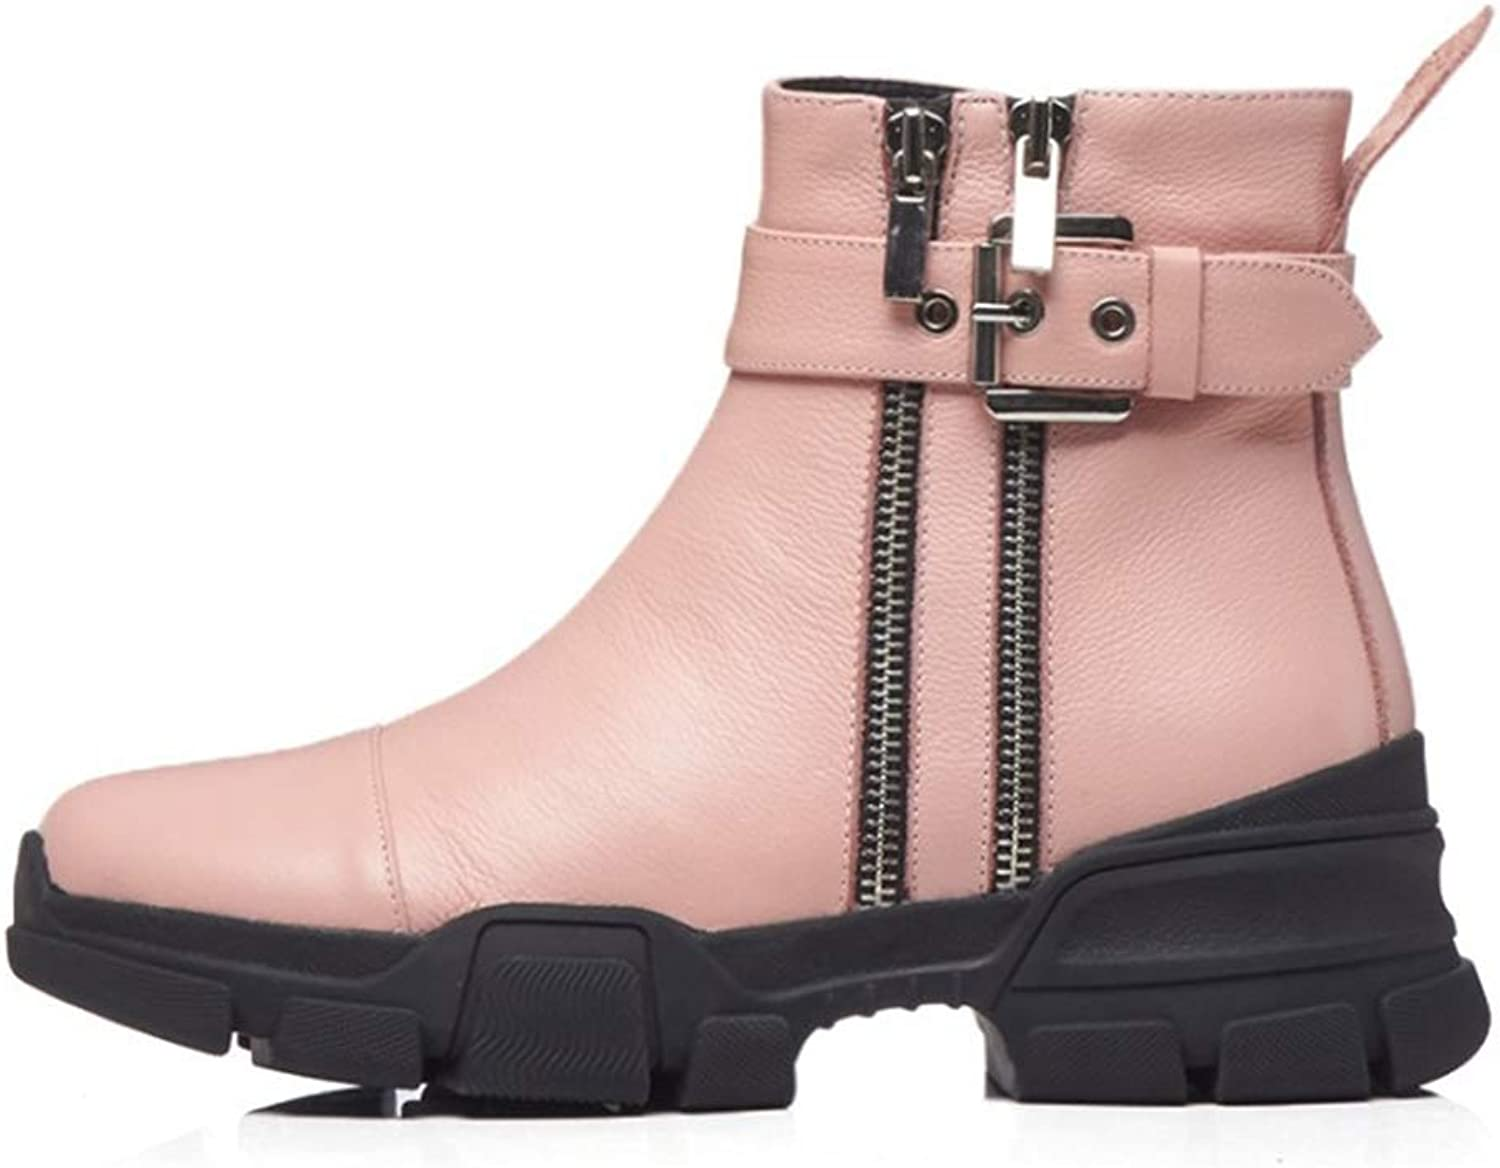 Women's Ankle Boots Leather Ladies Boots Fall Platform shoes Winter Martin Boots England Vintage Boots Knight Boots Black Pink (color   Pink, Size   36)